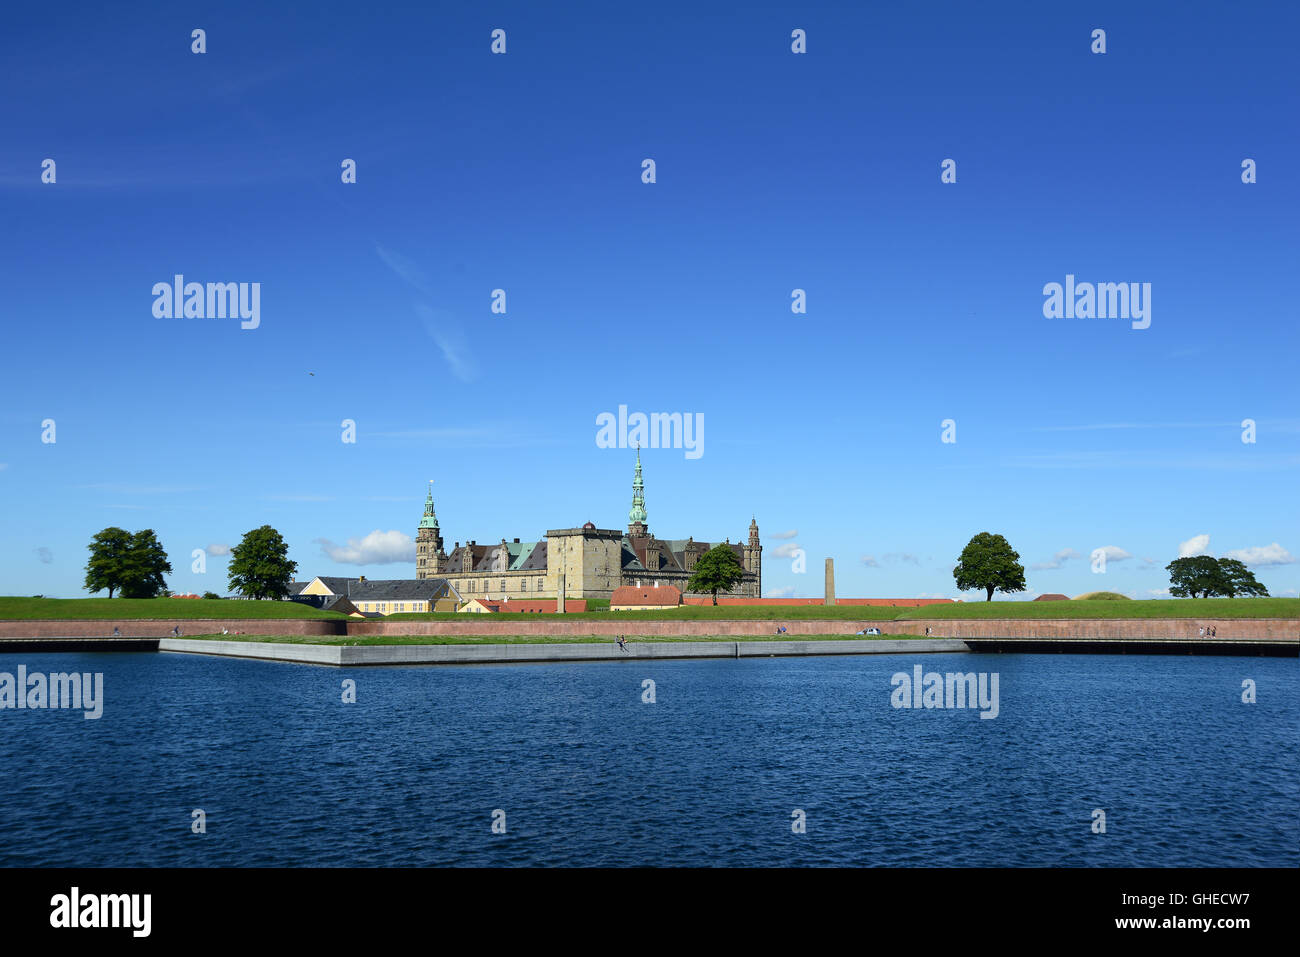 Kronborg Castle of Hamlet in Denmark - Stock Image